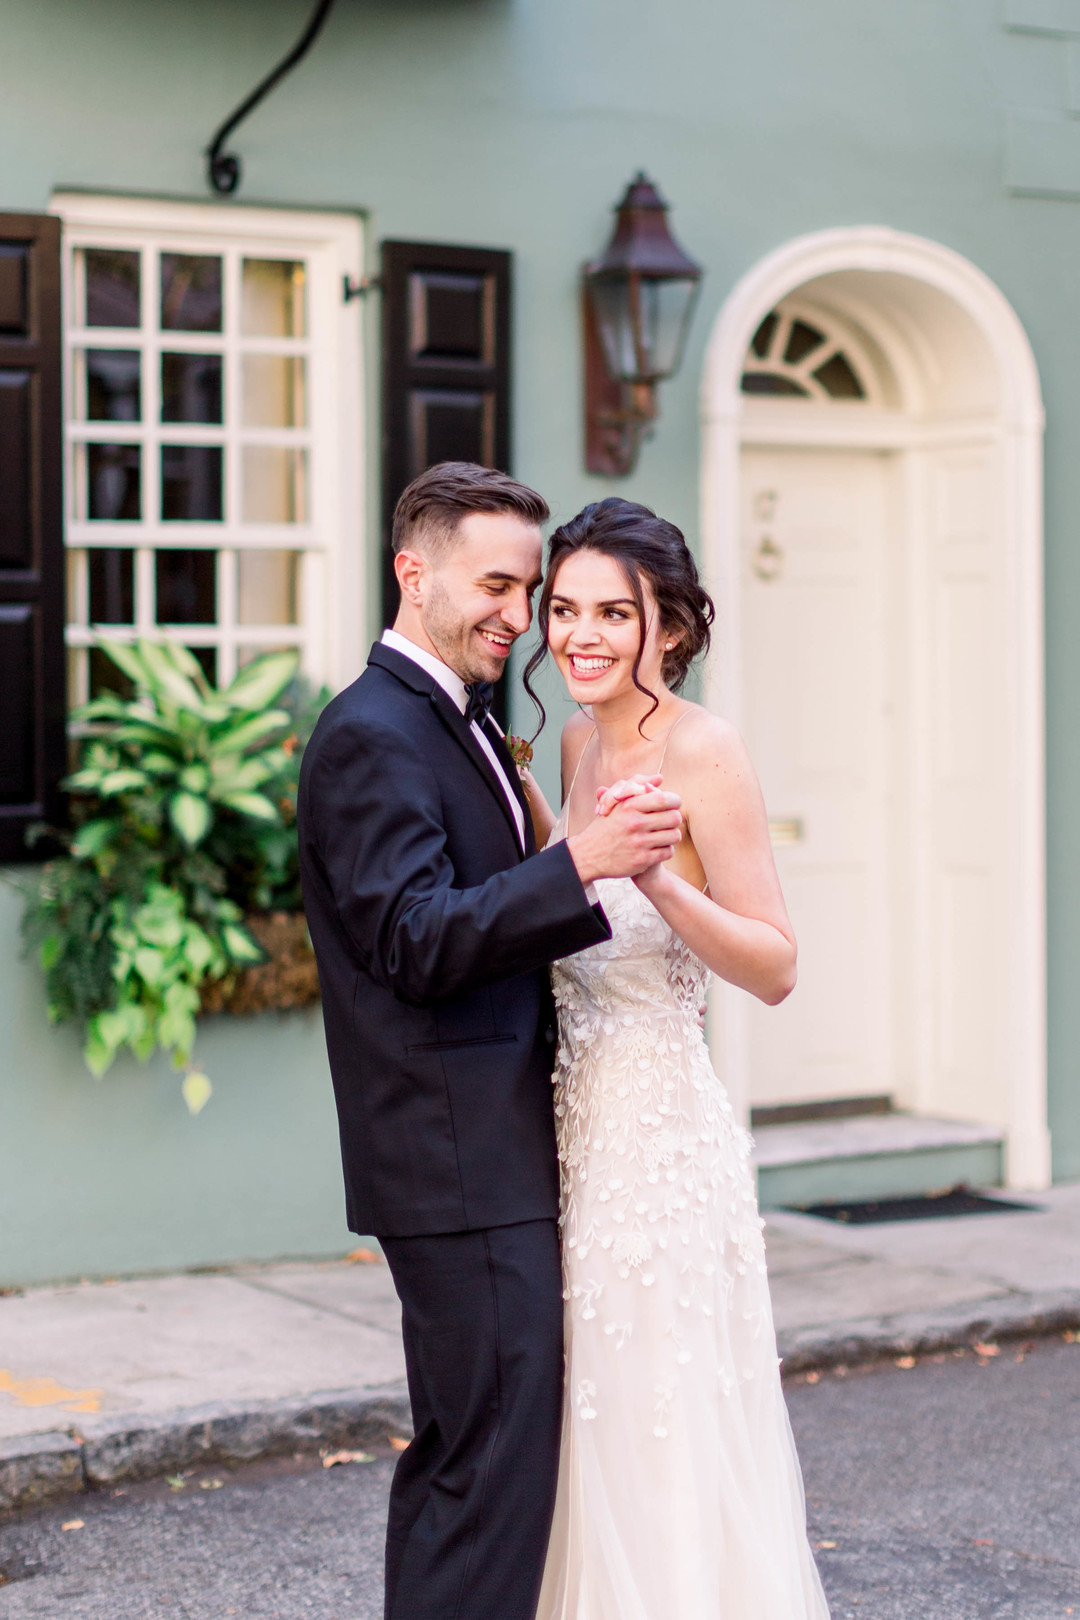 downtown-charleston-wedding-elopement-7.jpg